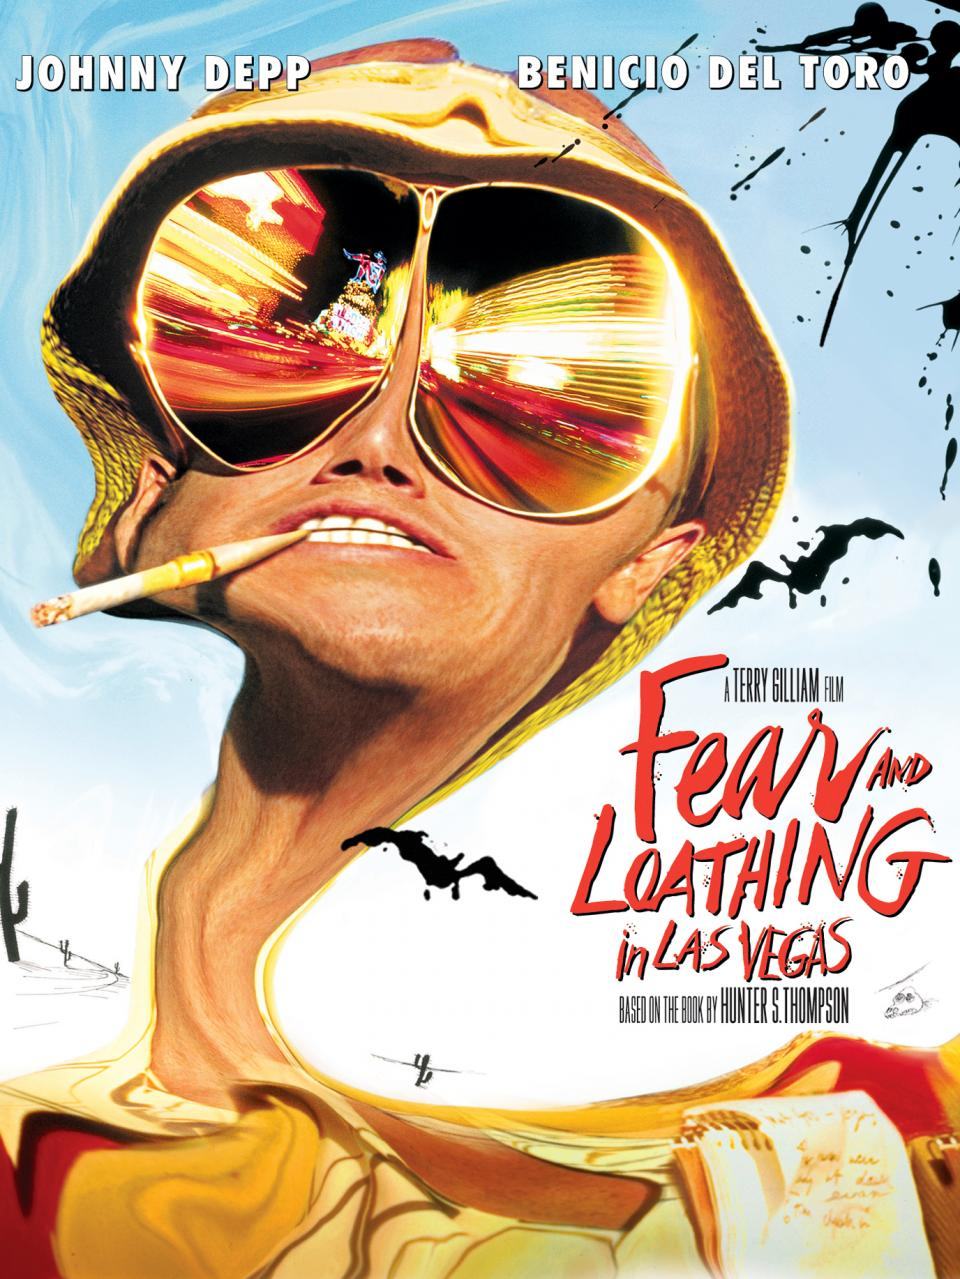 Fear and Loathing in Las Vegas (1998) - Directed by: Terry GilliamStarring: Johnny Depp, Benicio Del ToroRated: RRunning Time: 1h 58mTMM Score: 4 stars out of 5STRENGTHS: Originality, Acting, EffectsWEAKNESSES: Sound Mix